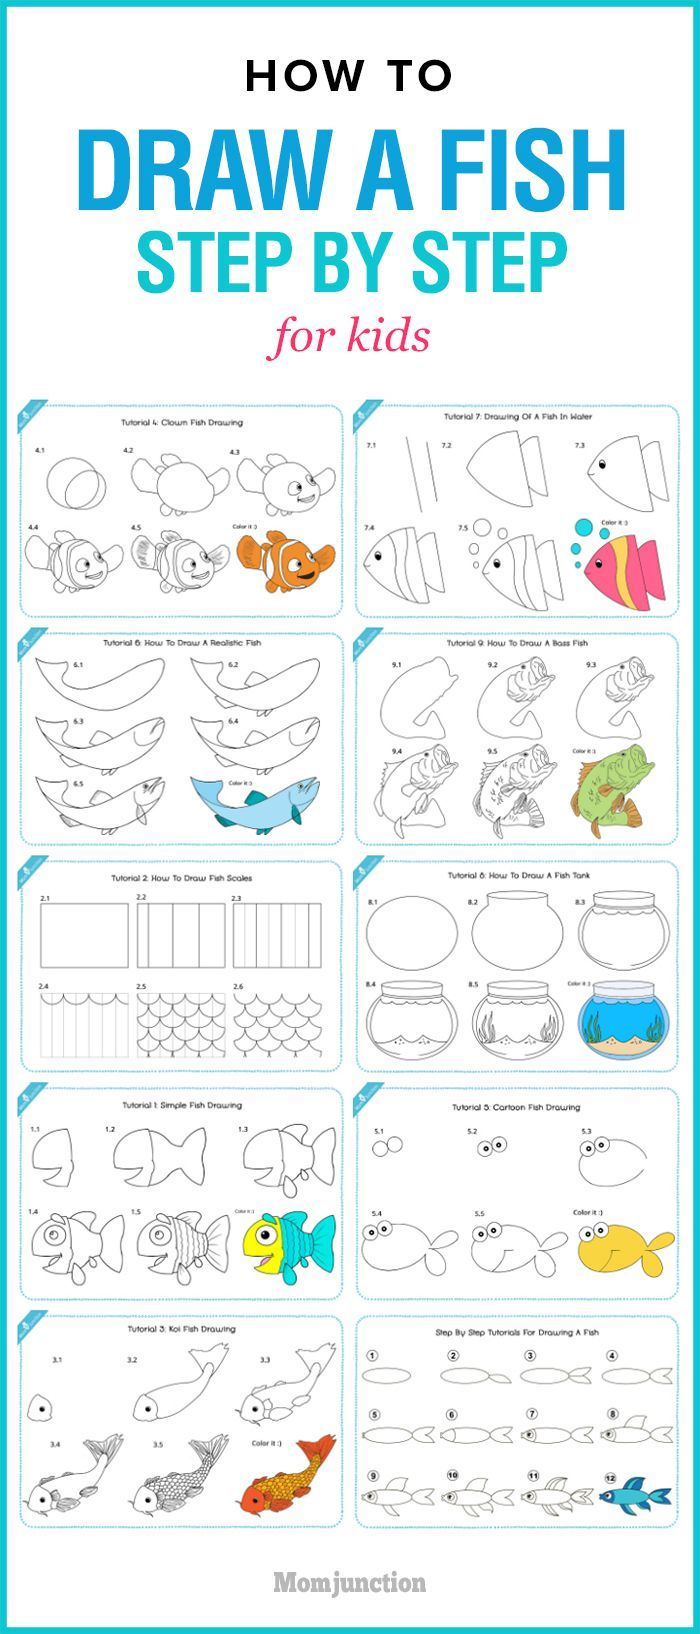 How To Draw A Fish Step By Step For Kids?